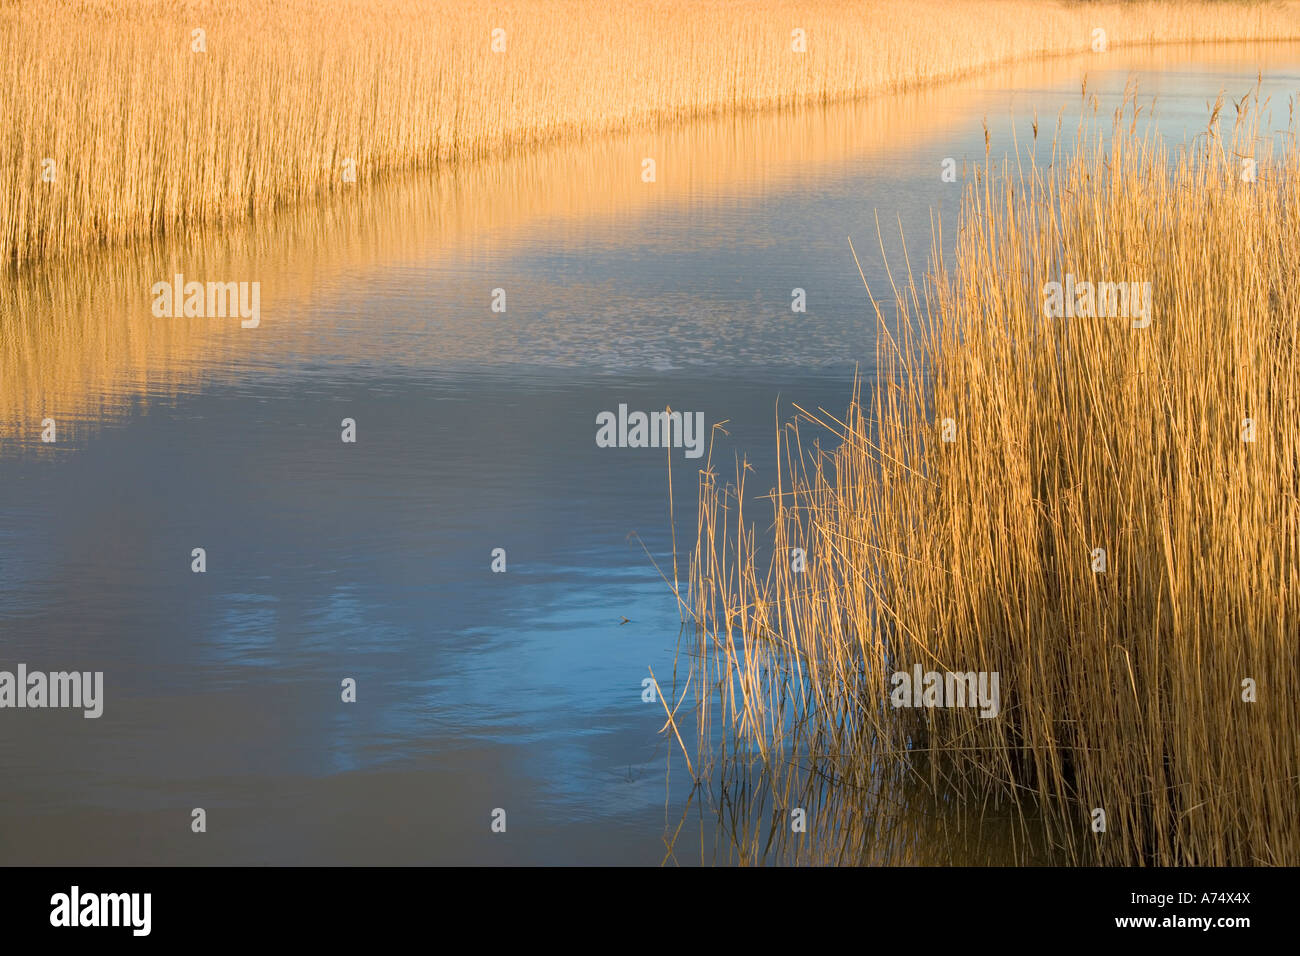 reed beds with river running through - Stock Image